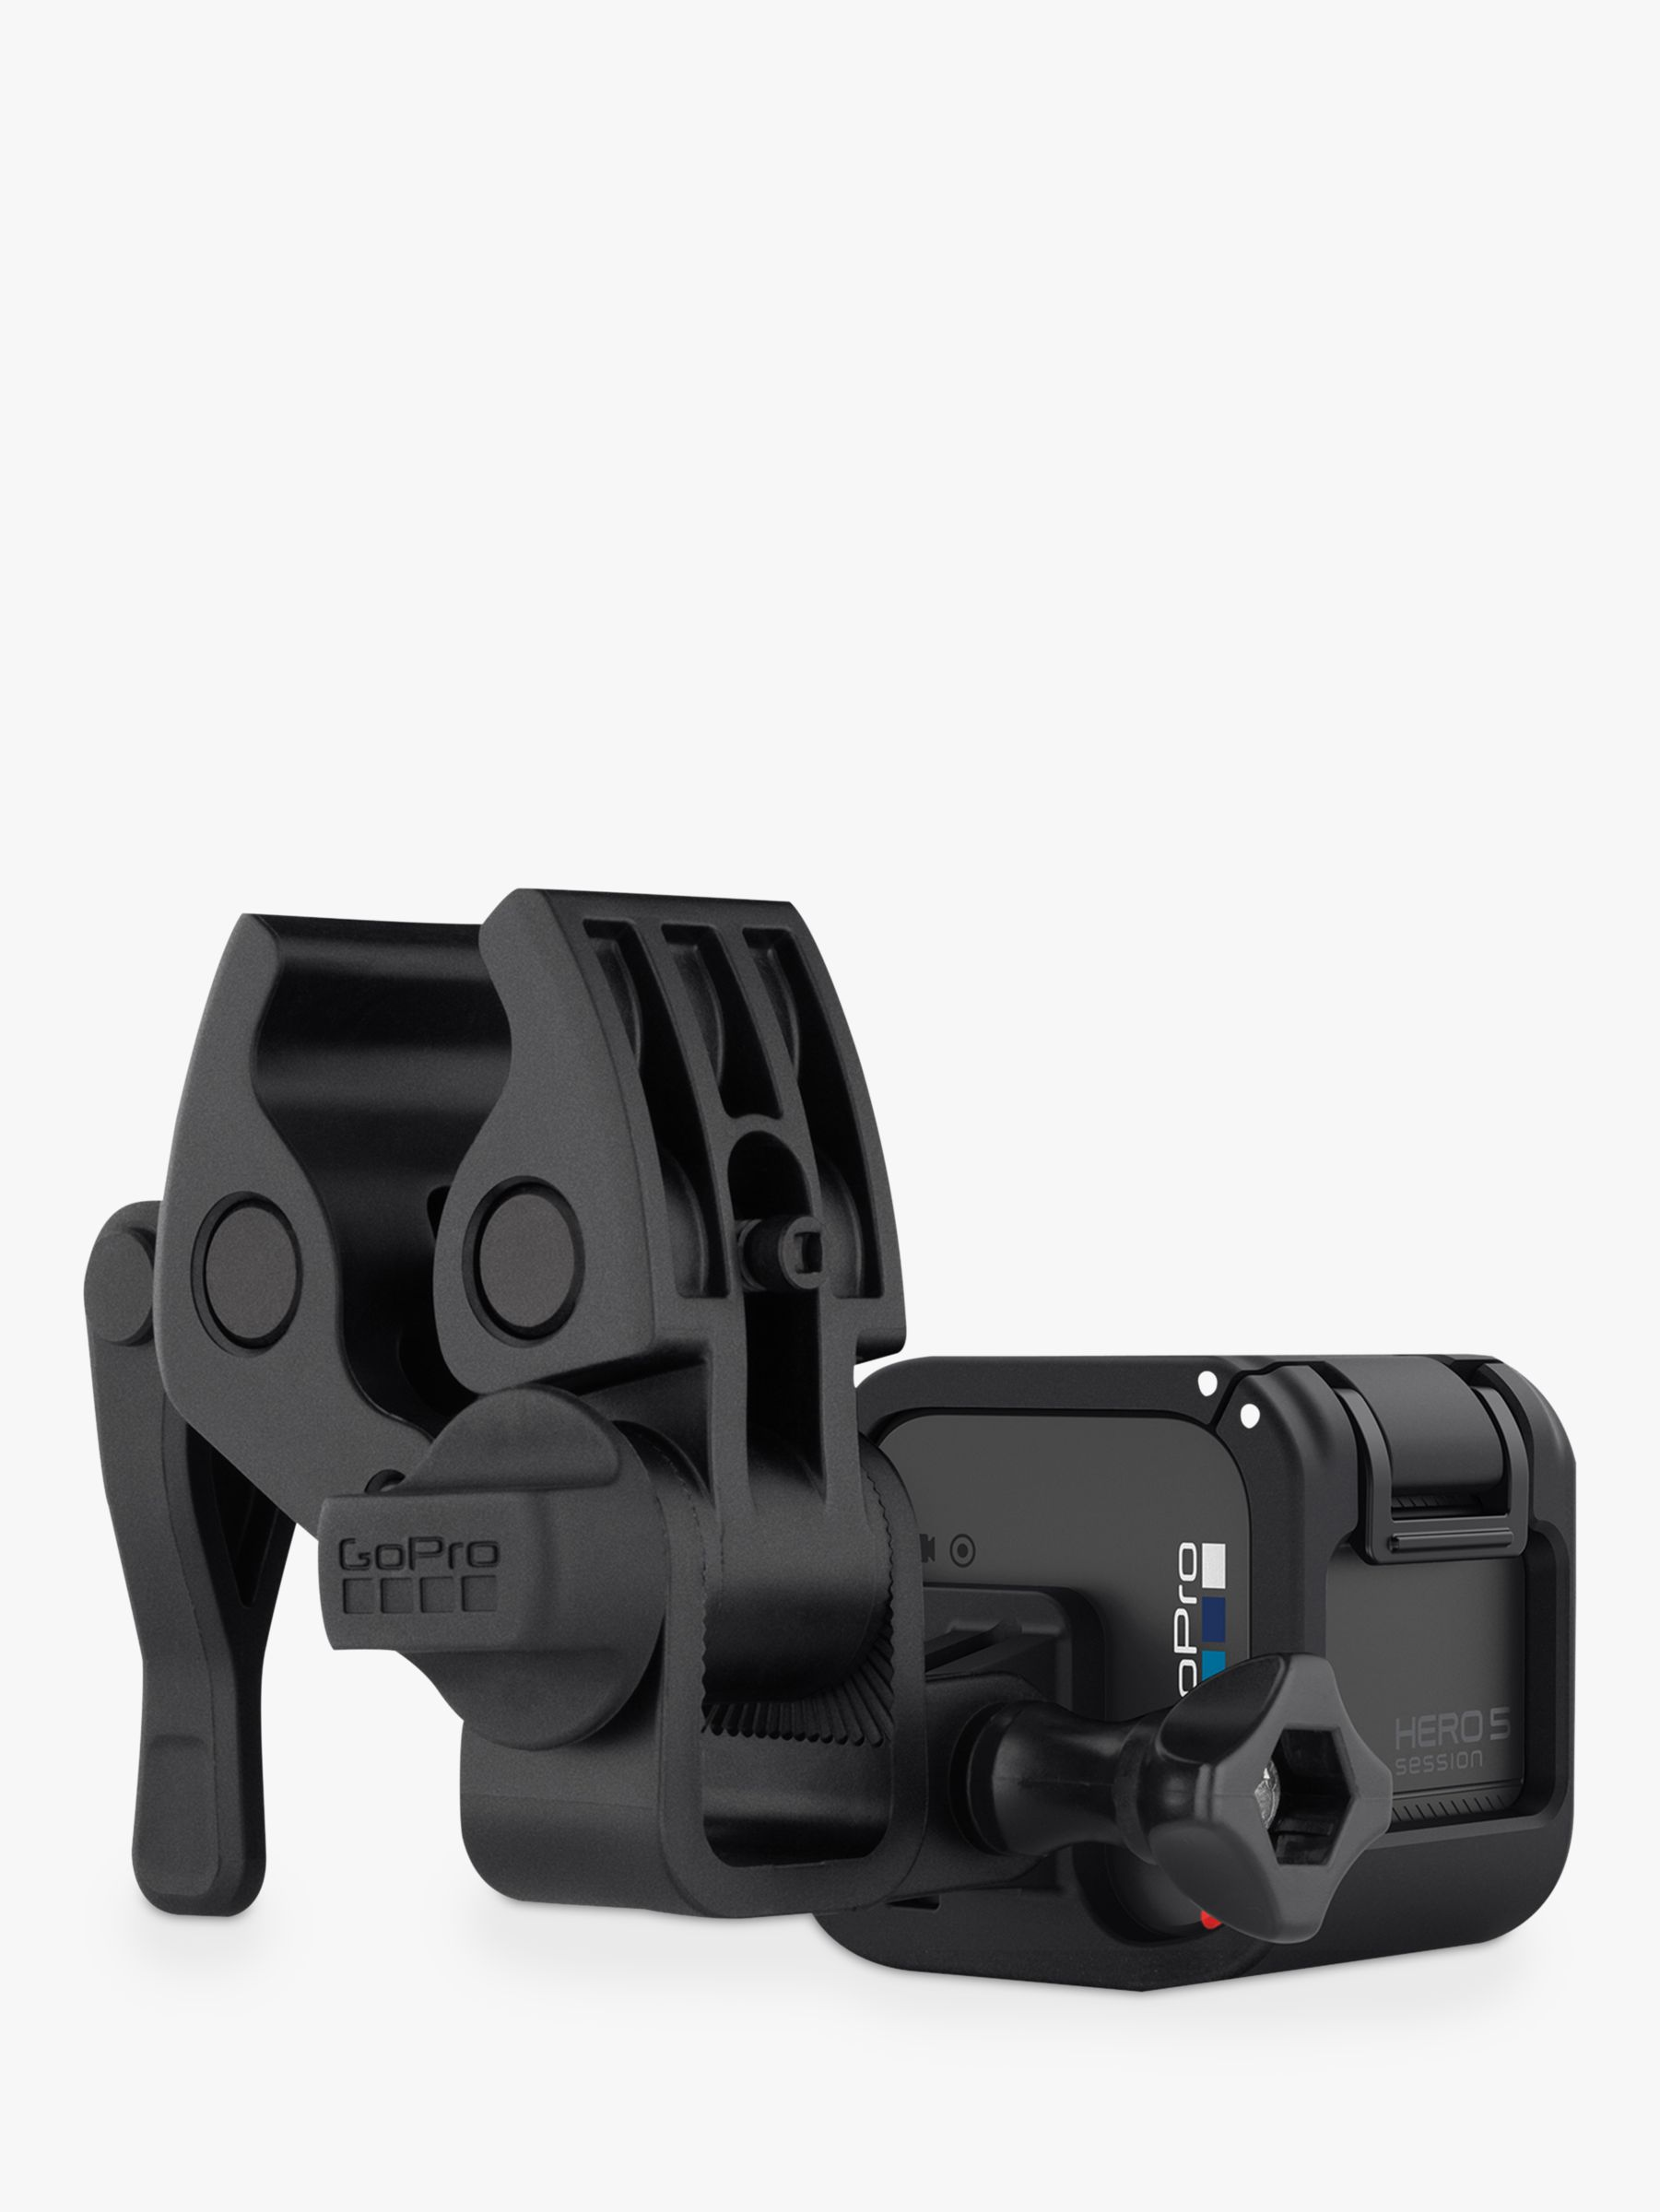 Gopro GoPro Gun, Rod and Bow Mount for All GoPros